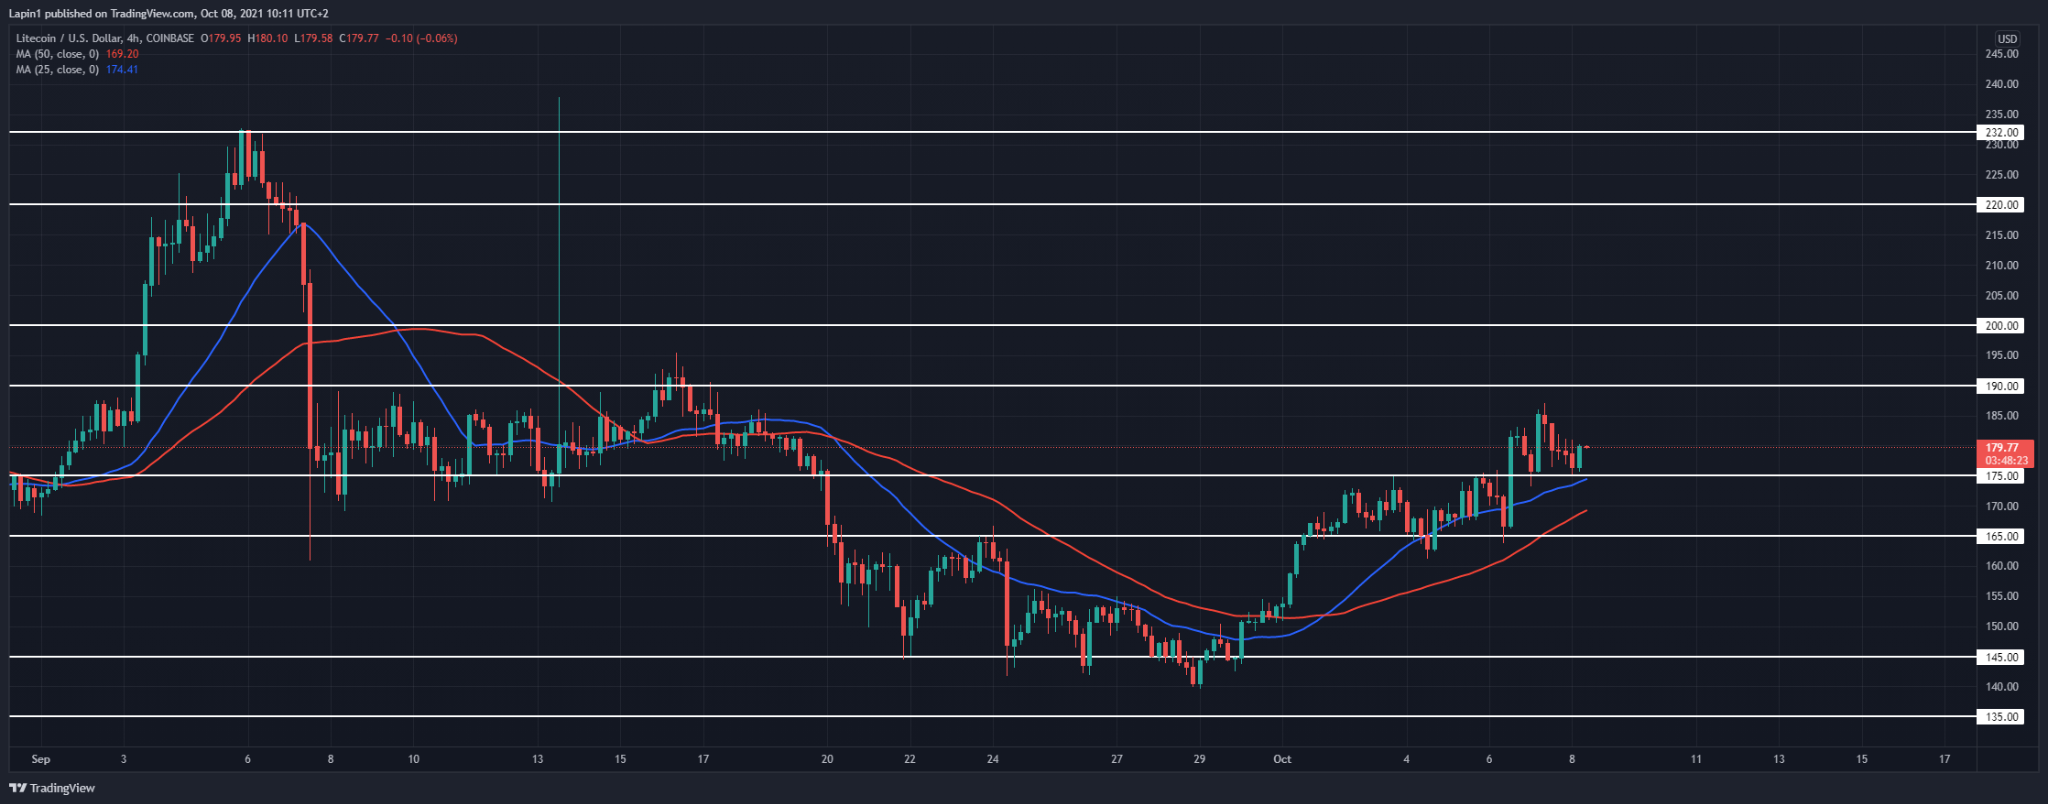 Litecoin Price Analysis: LTC retests $175 as support, more upside to follow over the weekend?